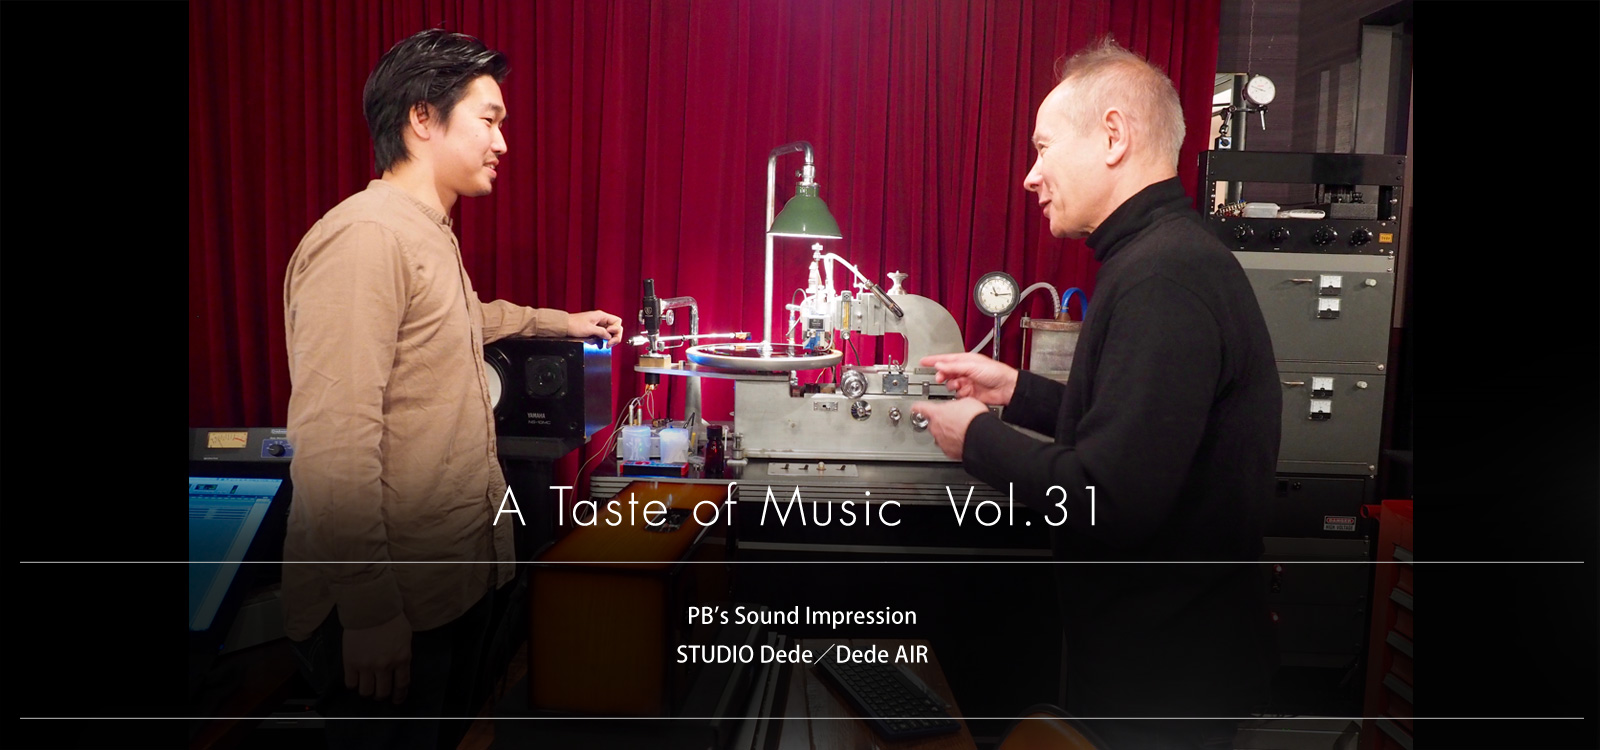 slider image A Taste of Music Vol.31